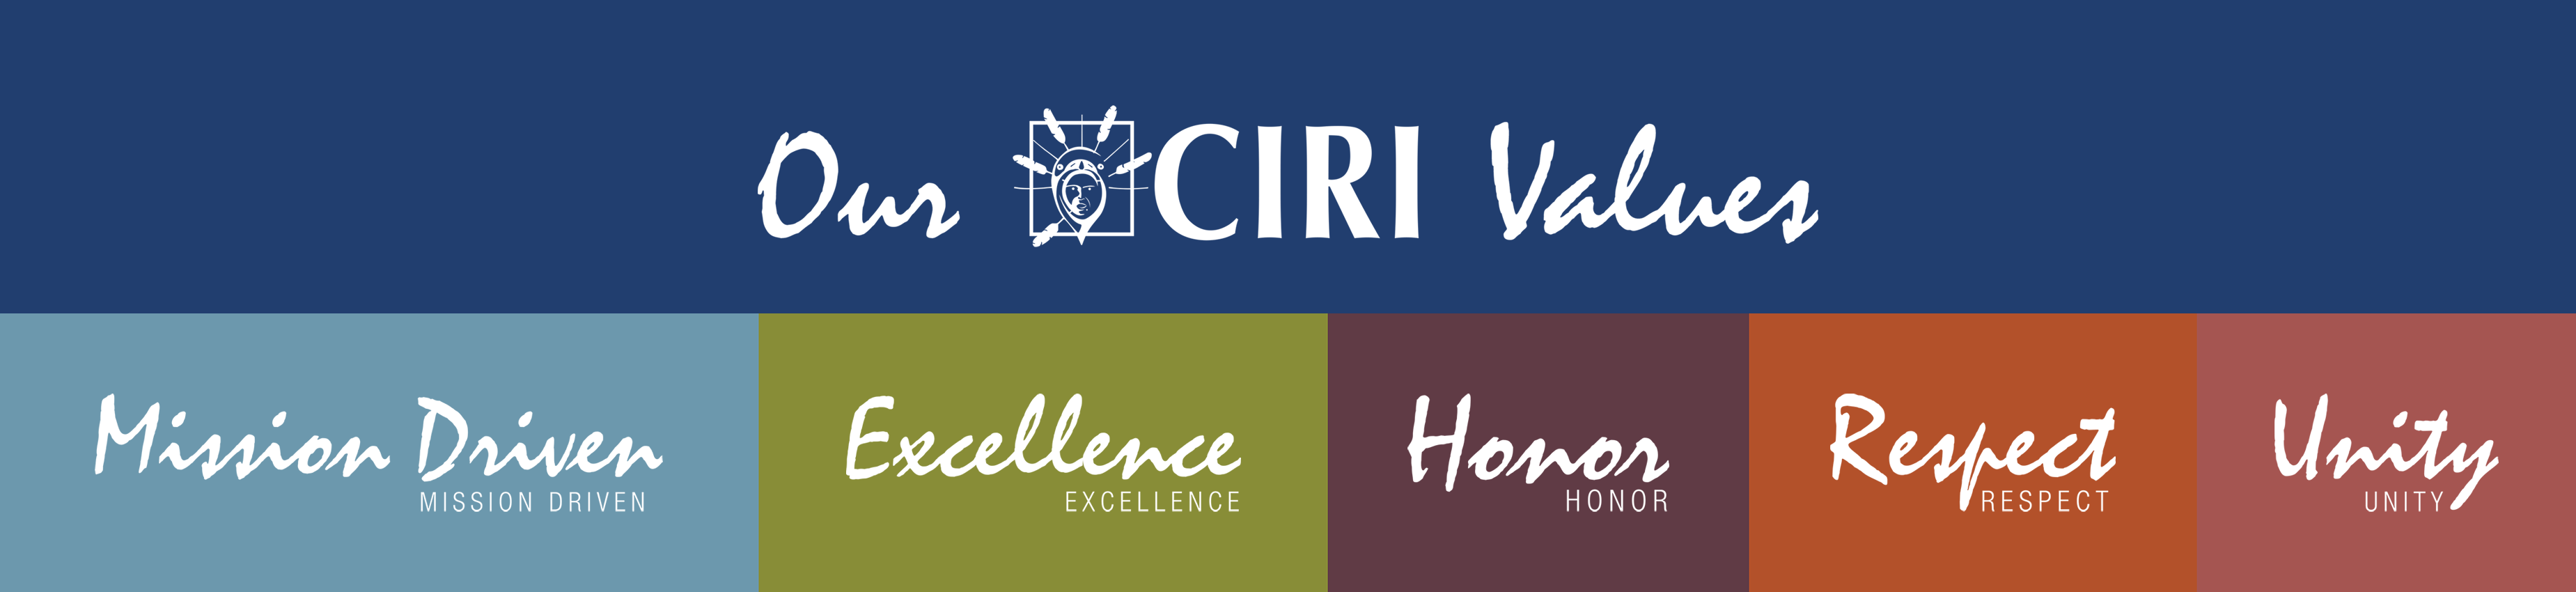 values_banner